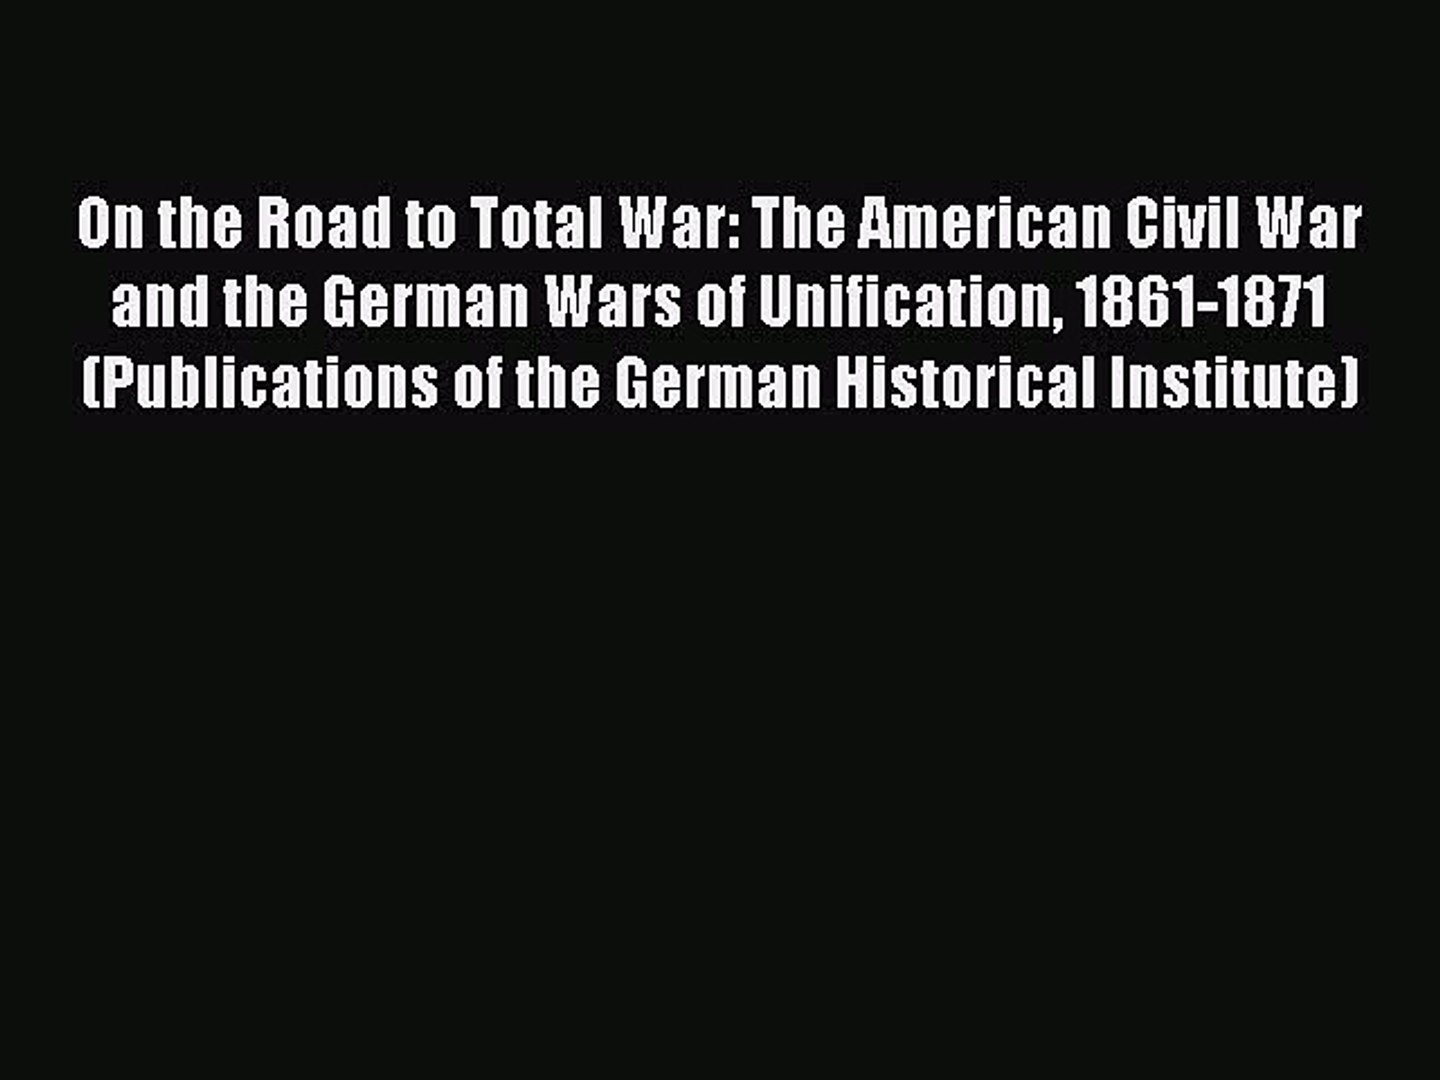 Read On the Road to Total War: The American Civil War and the German Wars of Unification 1861-1871